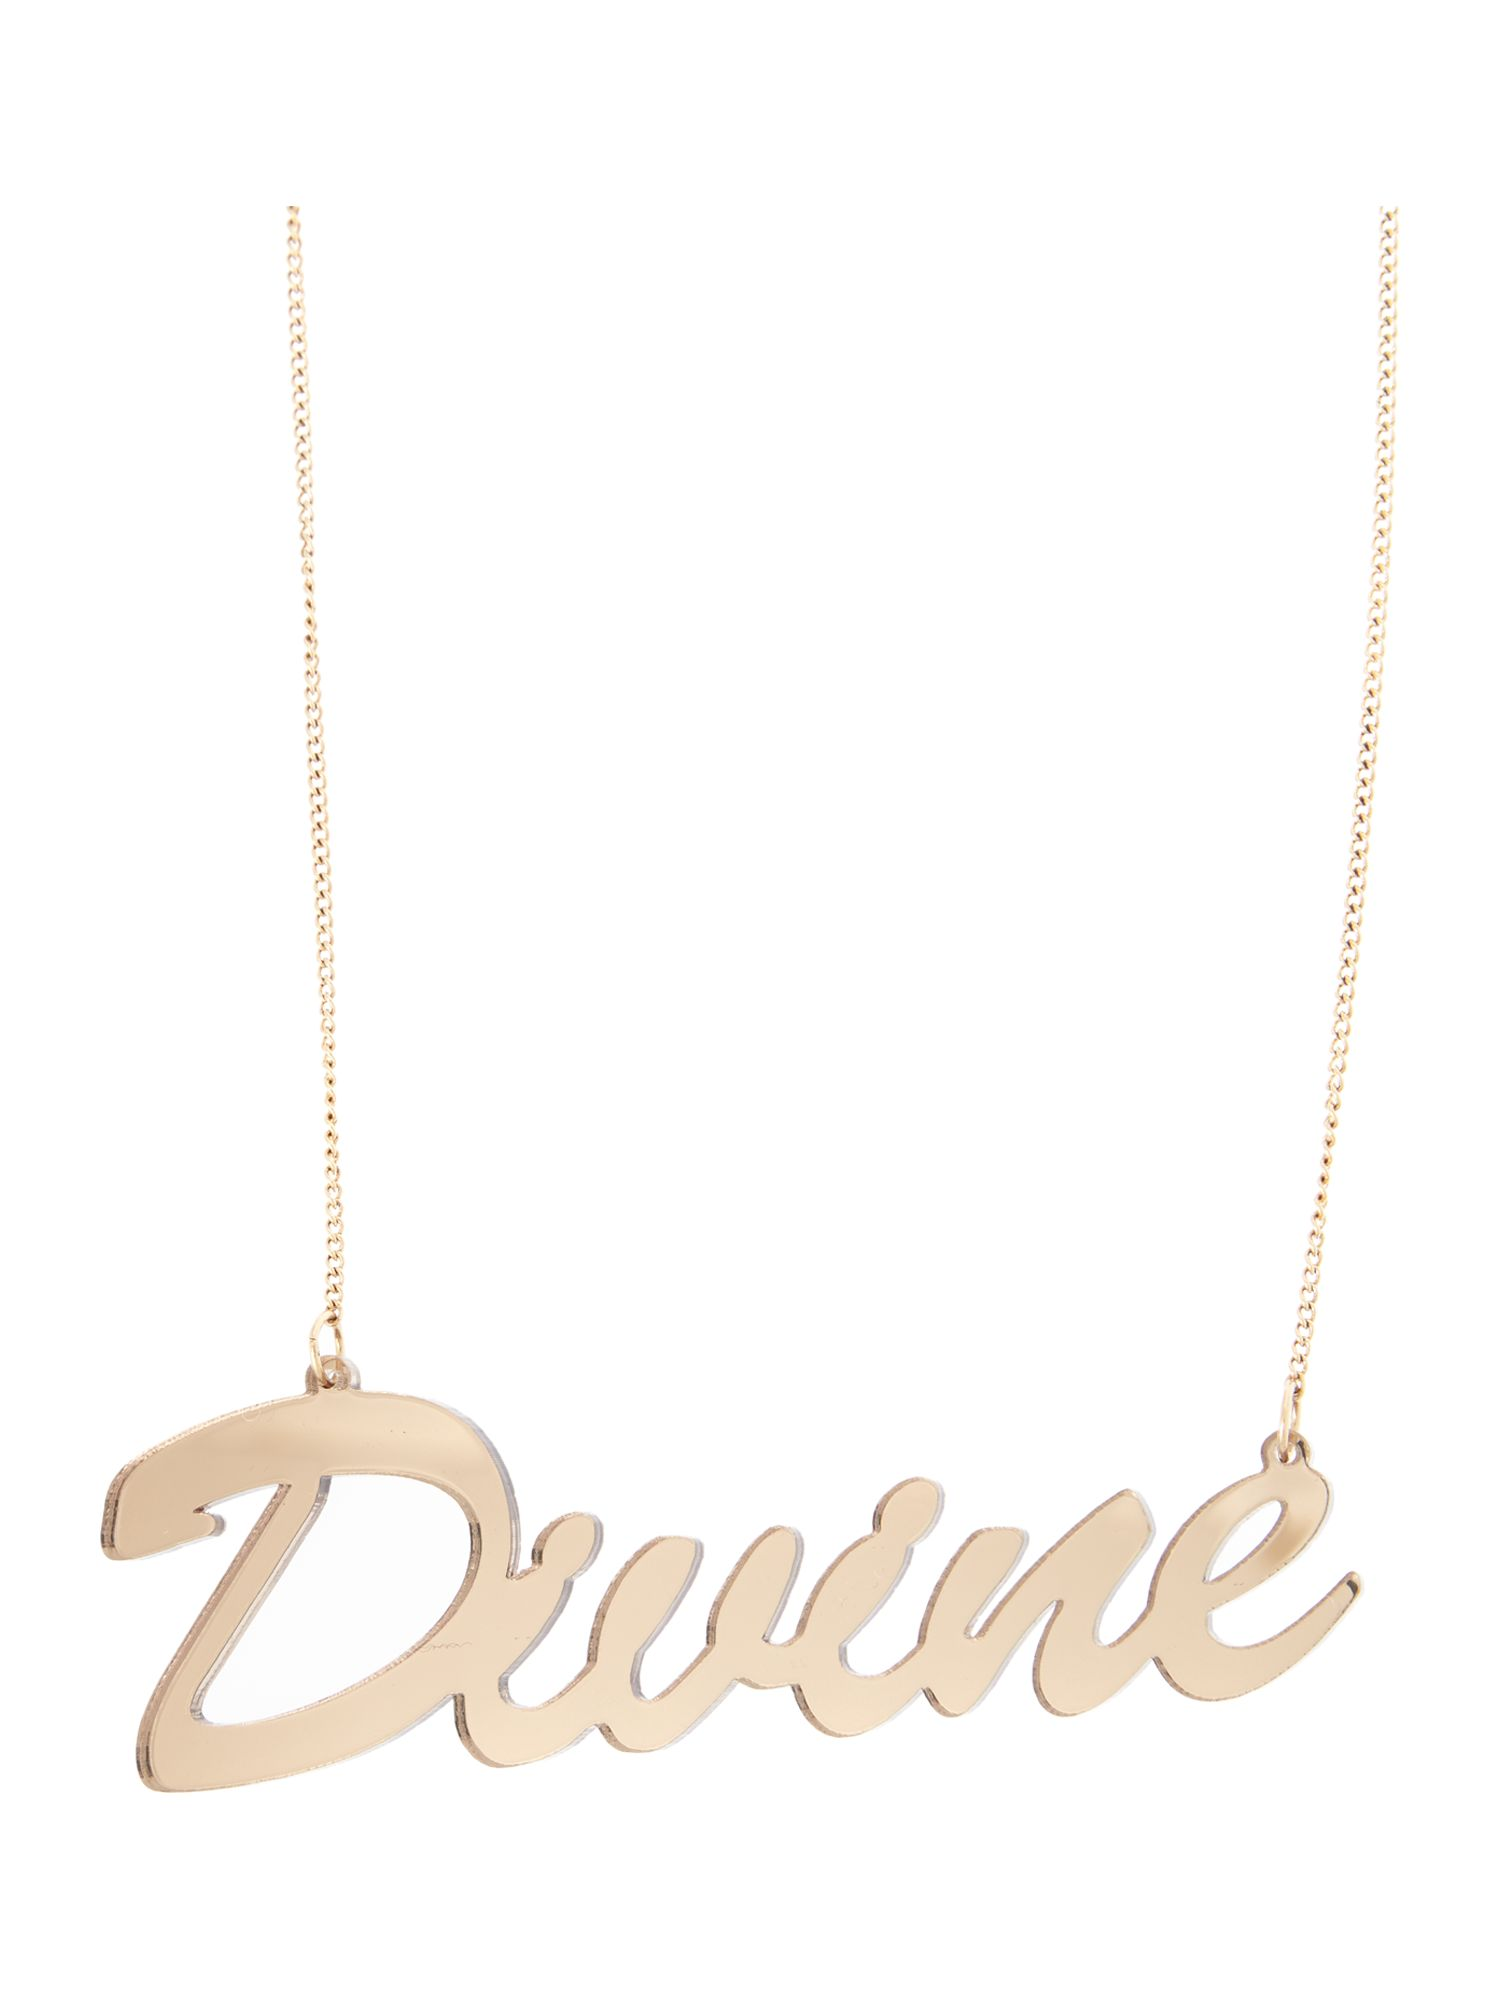 Divine necklace gunmetal